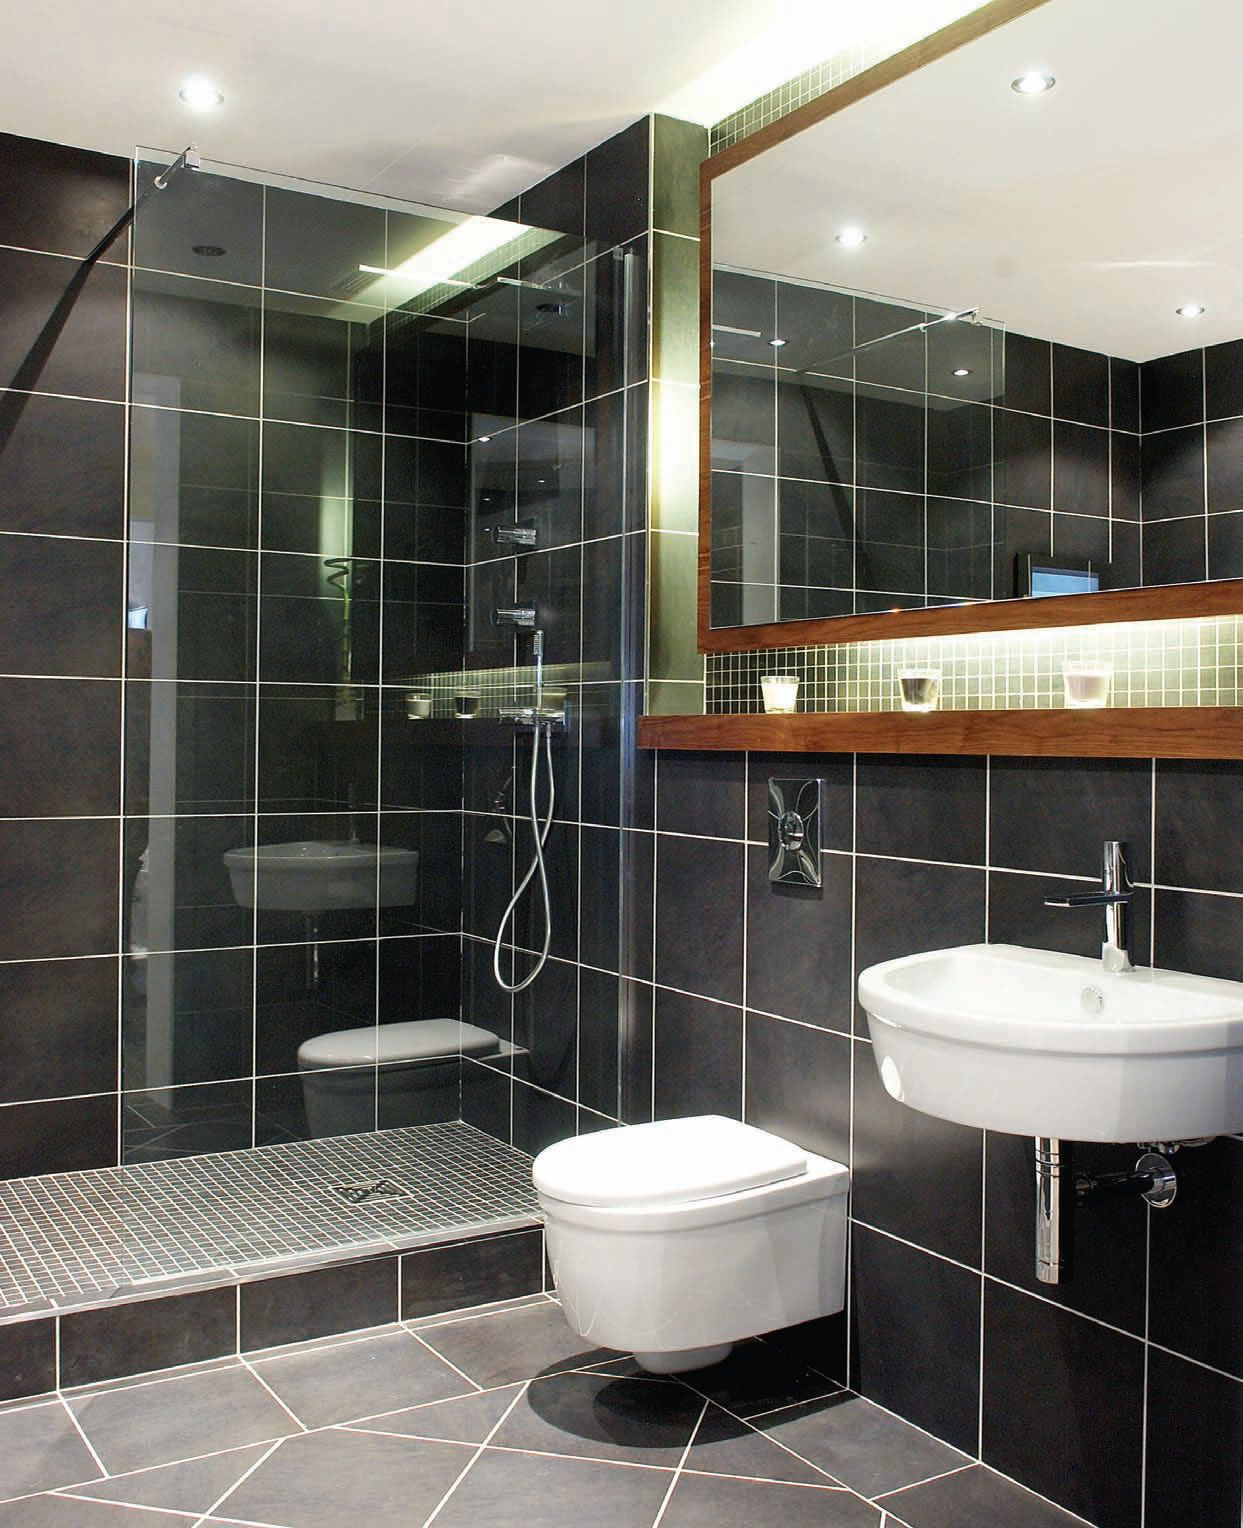 Raised wet room tray screen bathrooms pinterest wet rooms raised wet room tray screen dailygadgetfo Image collections